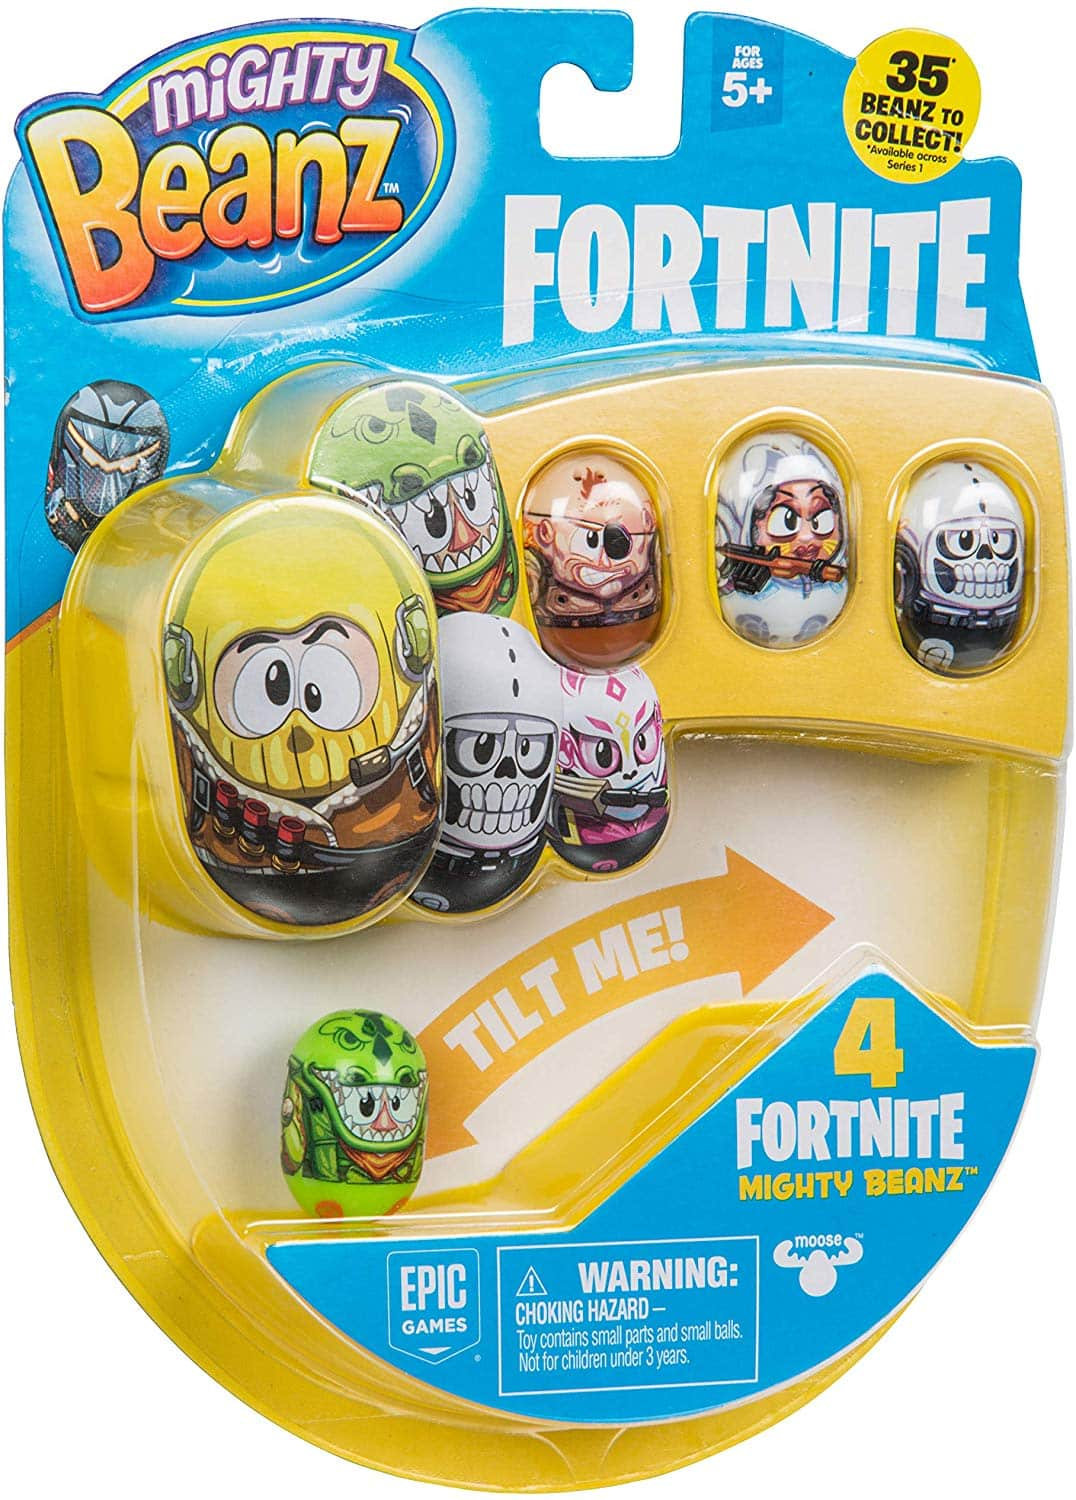 Fortnite, Treasure X and Little Live Pets toys starting at $4.84